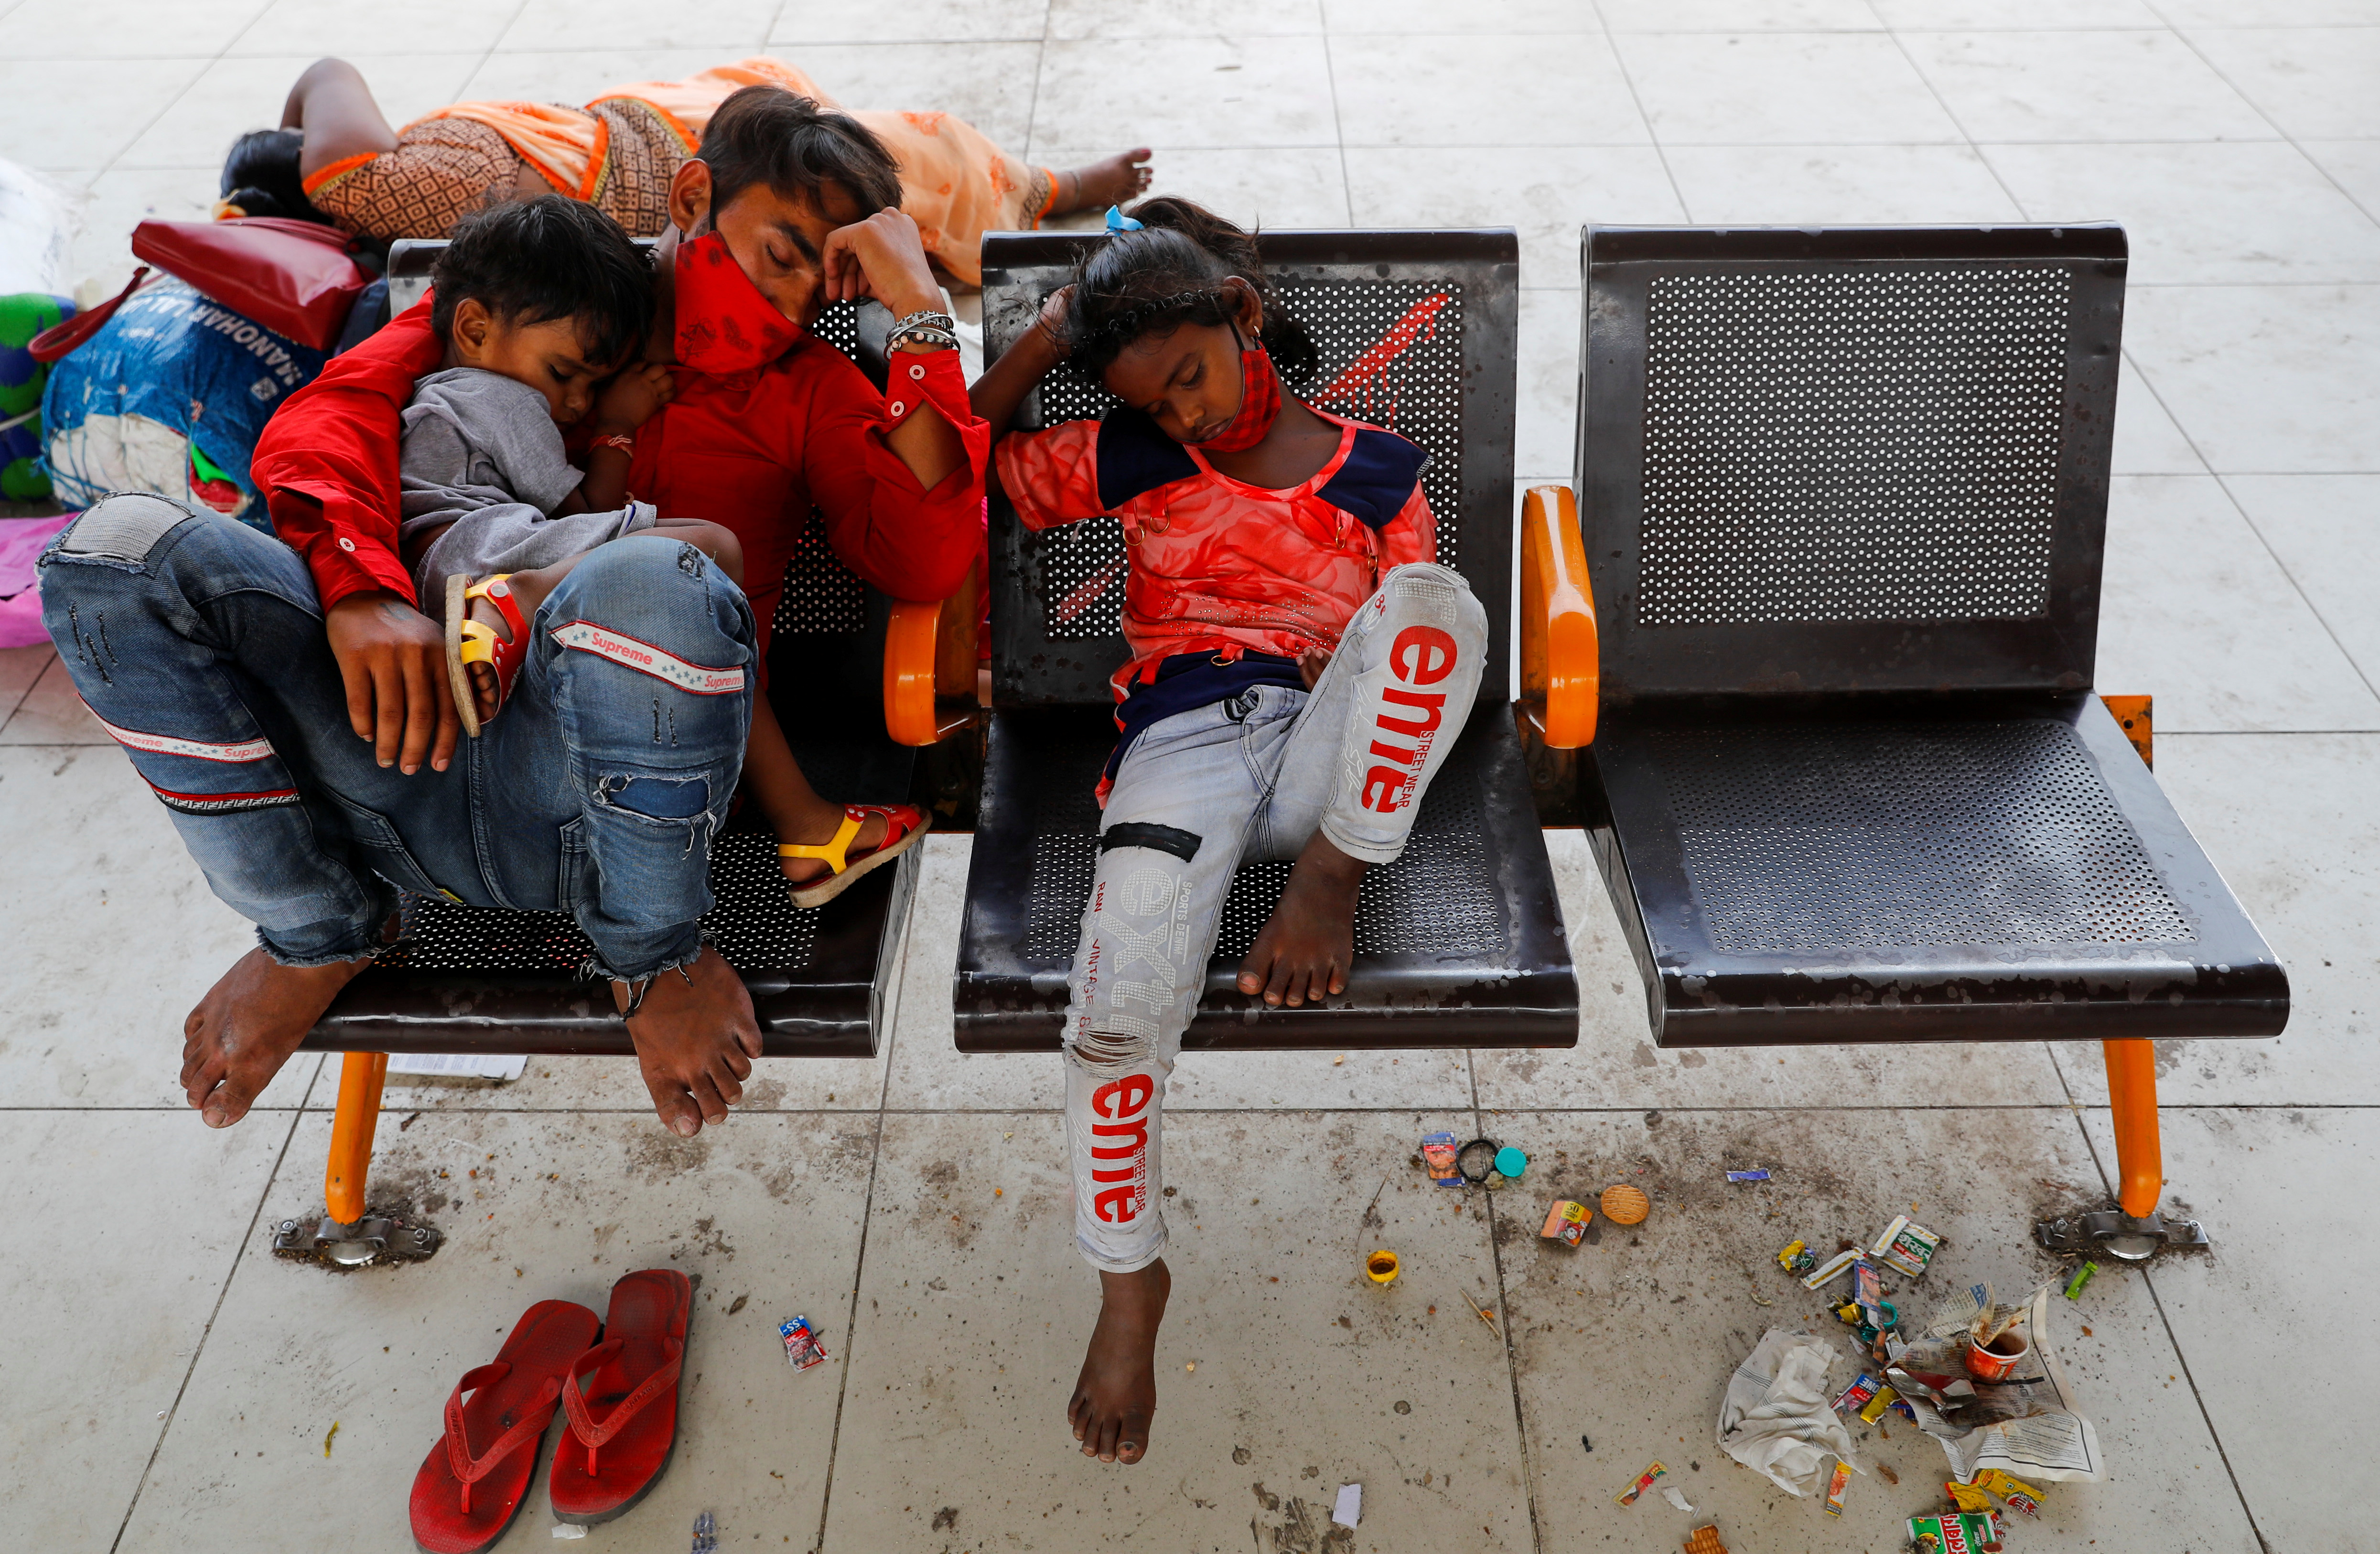 A migrant worker and his children sleep at a bus station as they wait to return to their village, after Delhi government ordered a six-day lockdown to limit the spread of the coronavirus disease (COVID-19), in Ghaziabad on the outskirts of New Delhi, India, April 20, 2021. REUTERS/Adnan Abidi